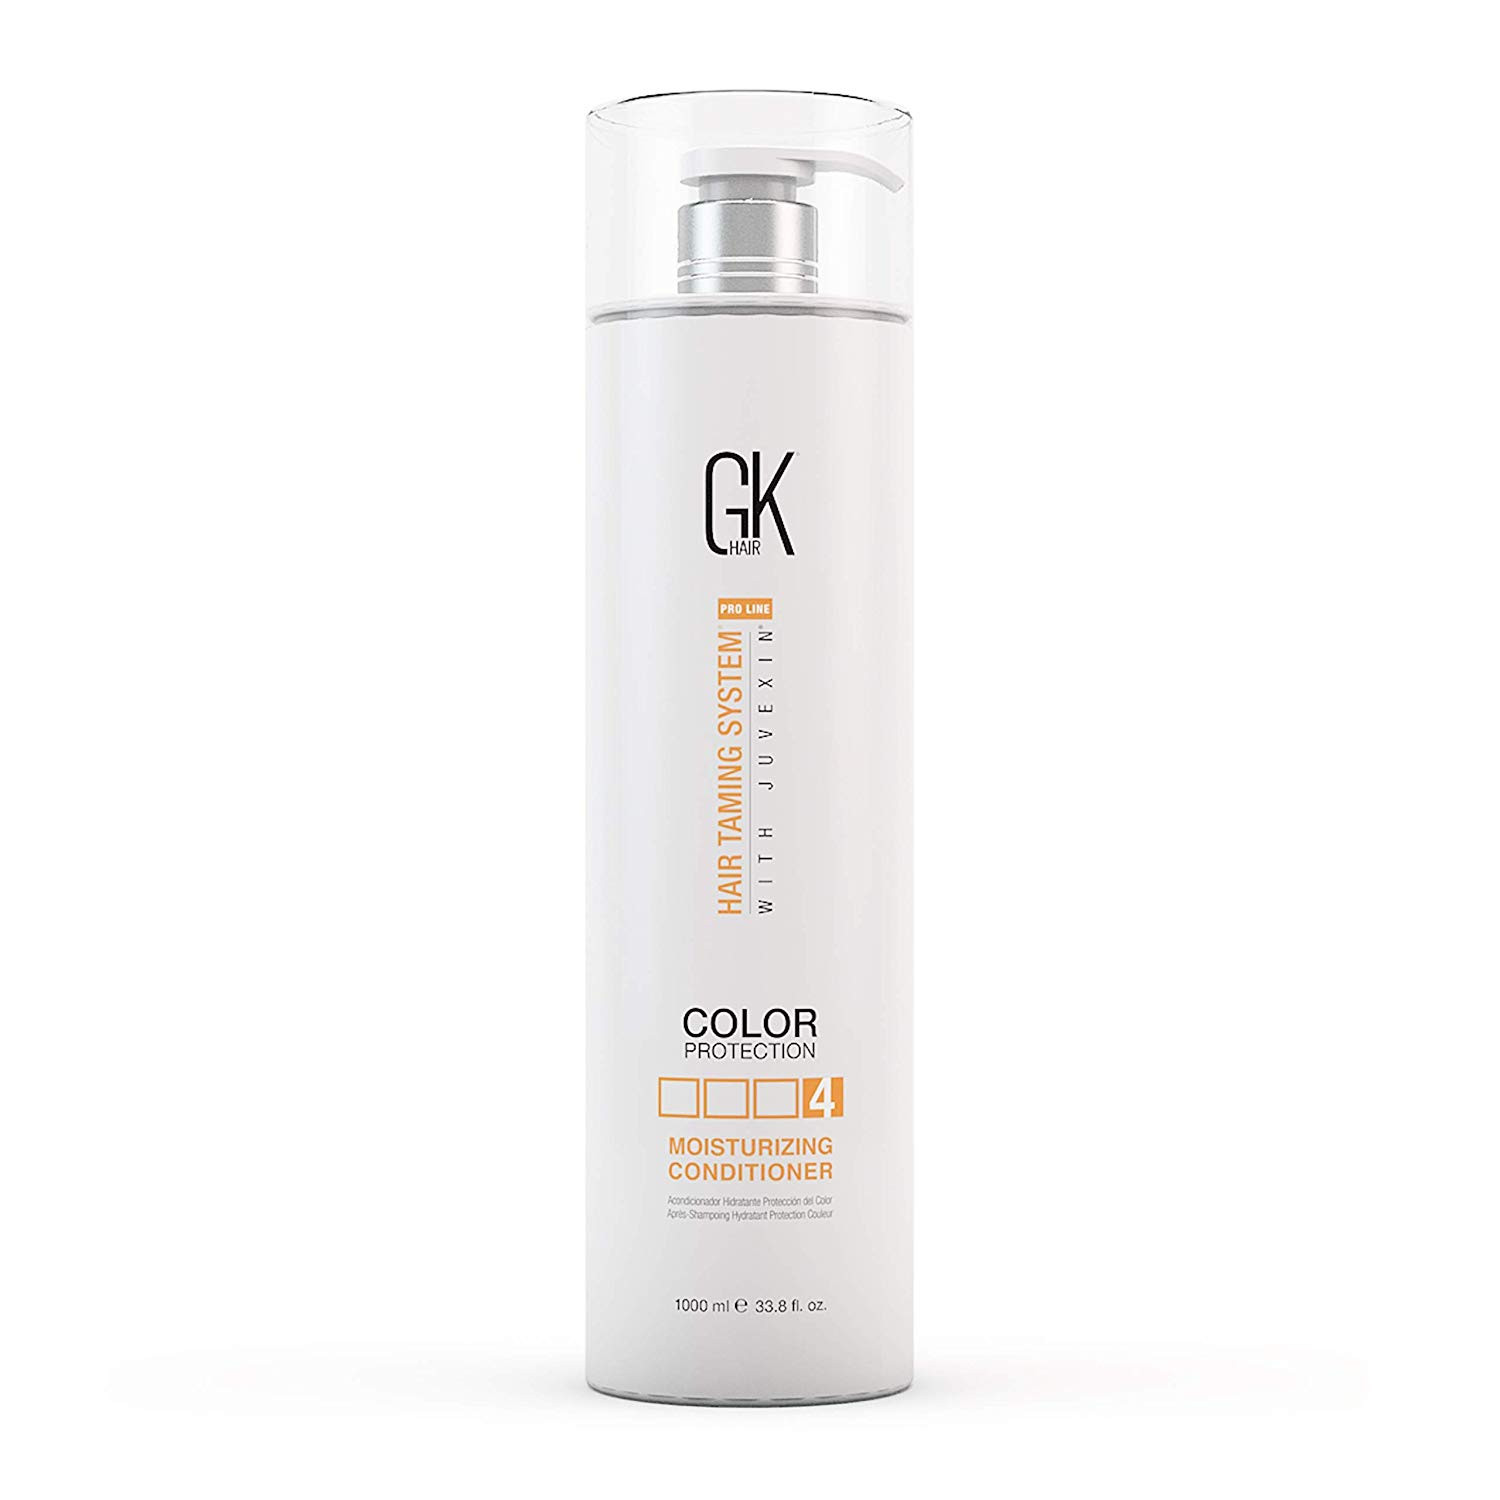 Global Keratin Color Protection Moisturizing Conditioner